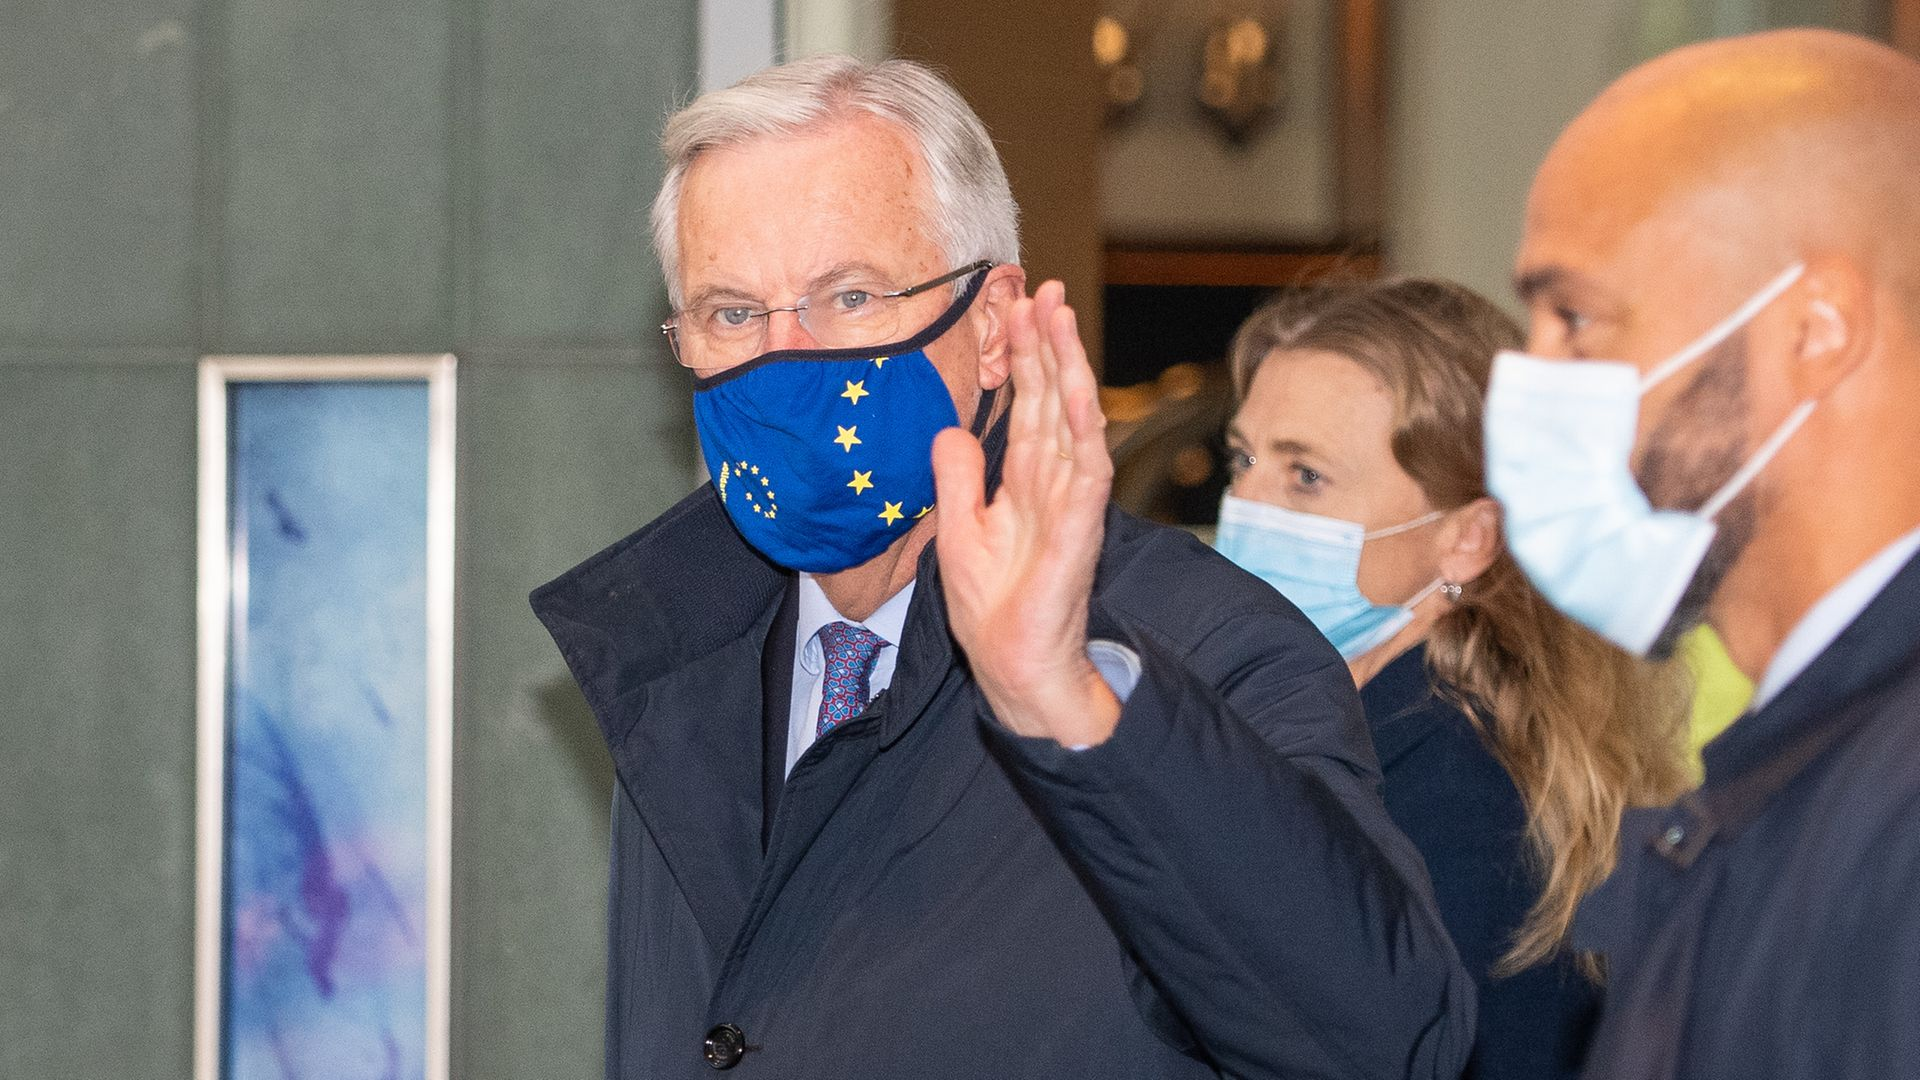 EU's chief negotiator Michel Barnier walking with other members of the EU delegation - Credit: PA